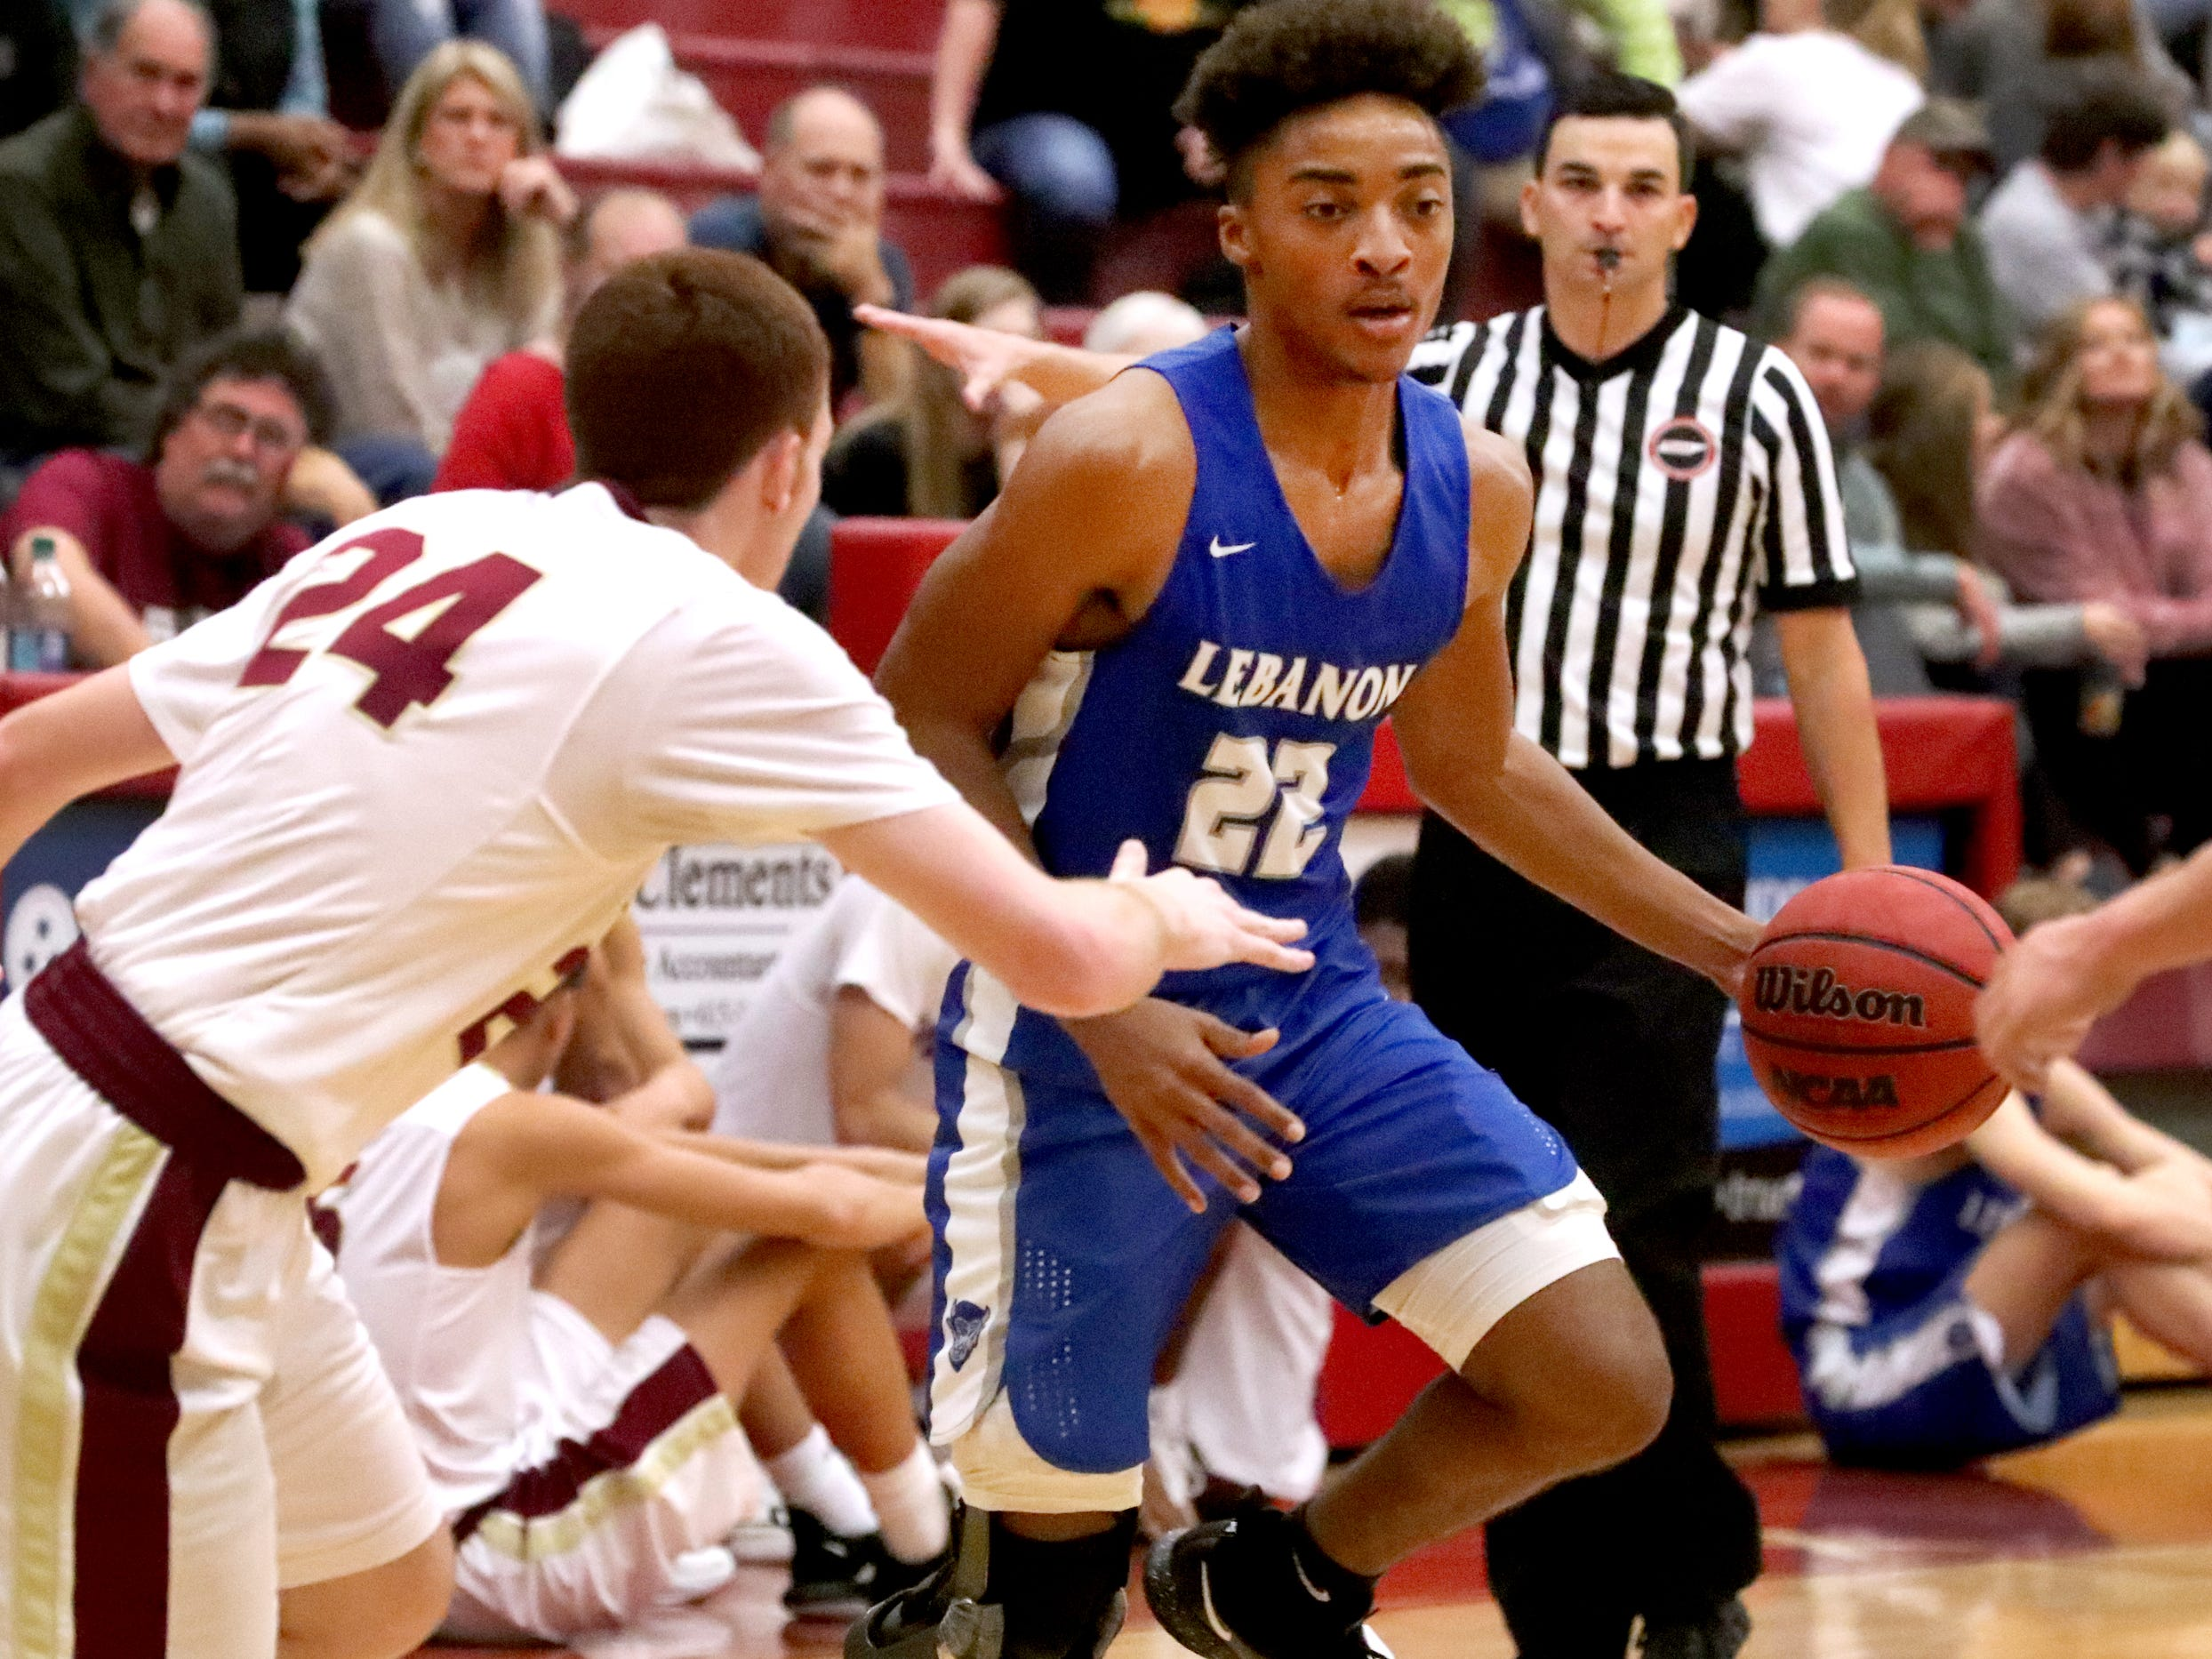 Lebanon's Polo Phillips (22) moves toward the basket as RiverdaleÕs Preston Whittington (24) guards him during the game at Riverdale on Friday, Nov. 30, 2018.